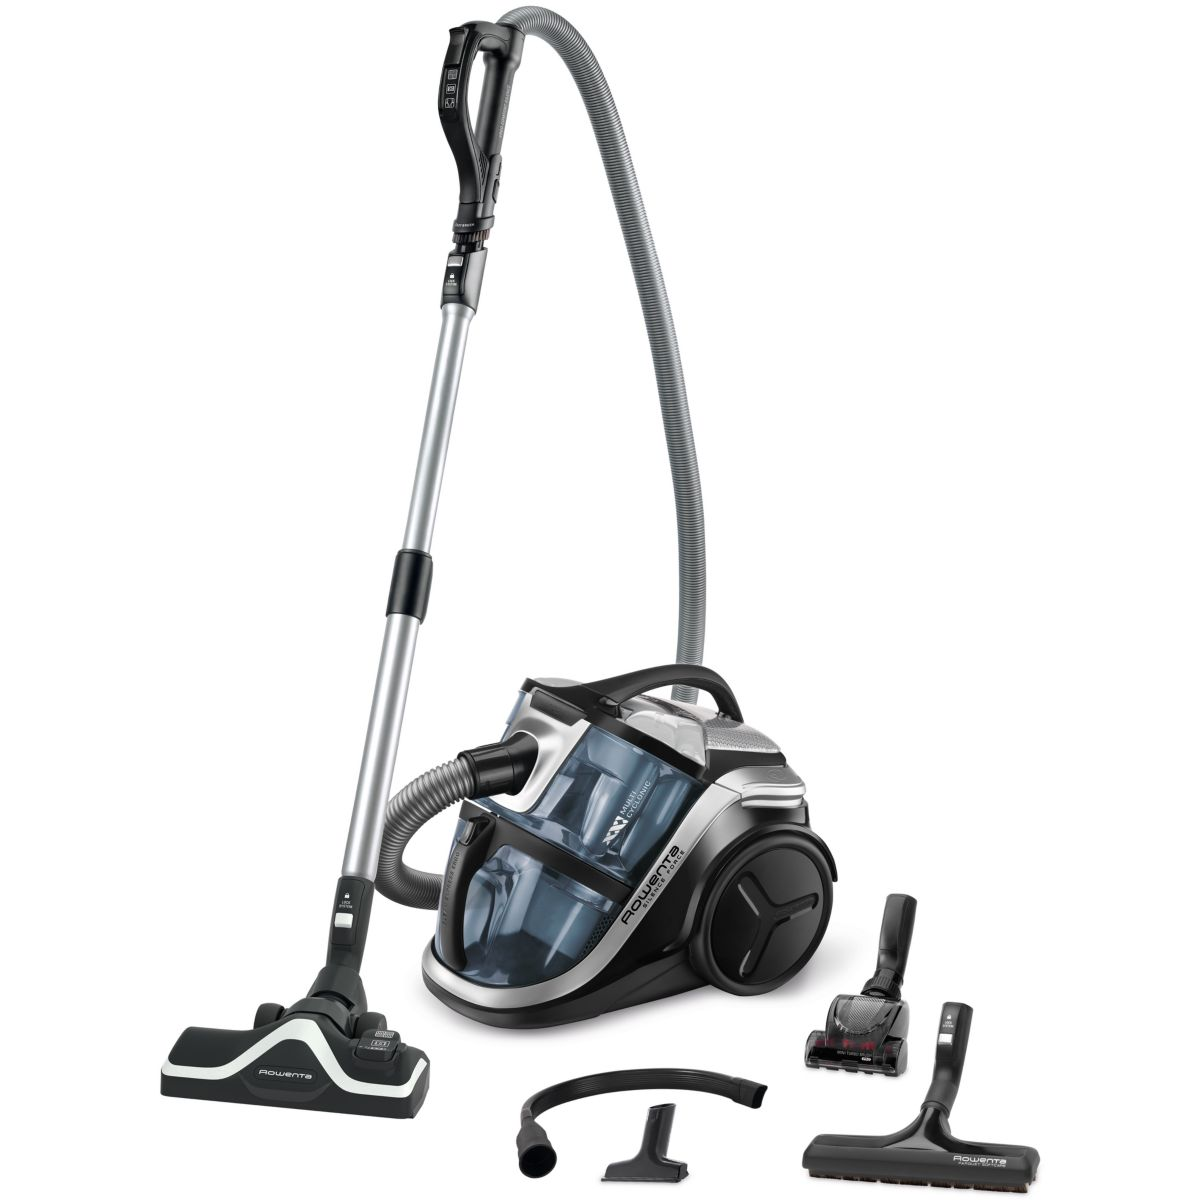 Aspirateur sans sac ROWENTA RO8376EA SF Multi cyclonic Home and car